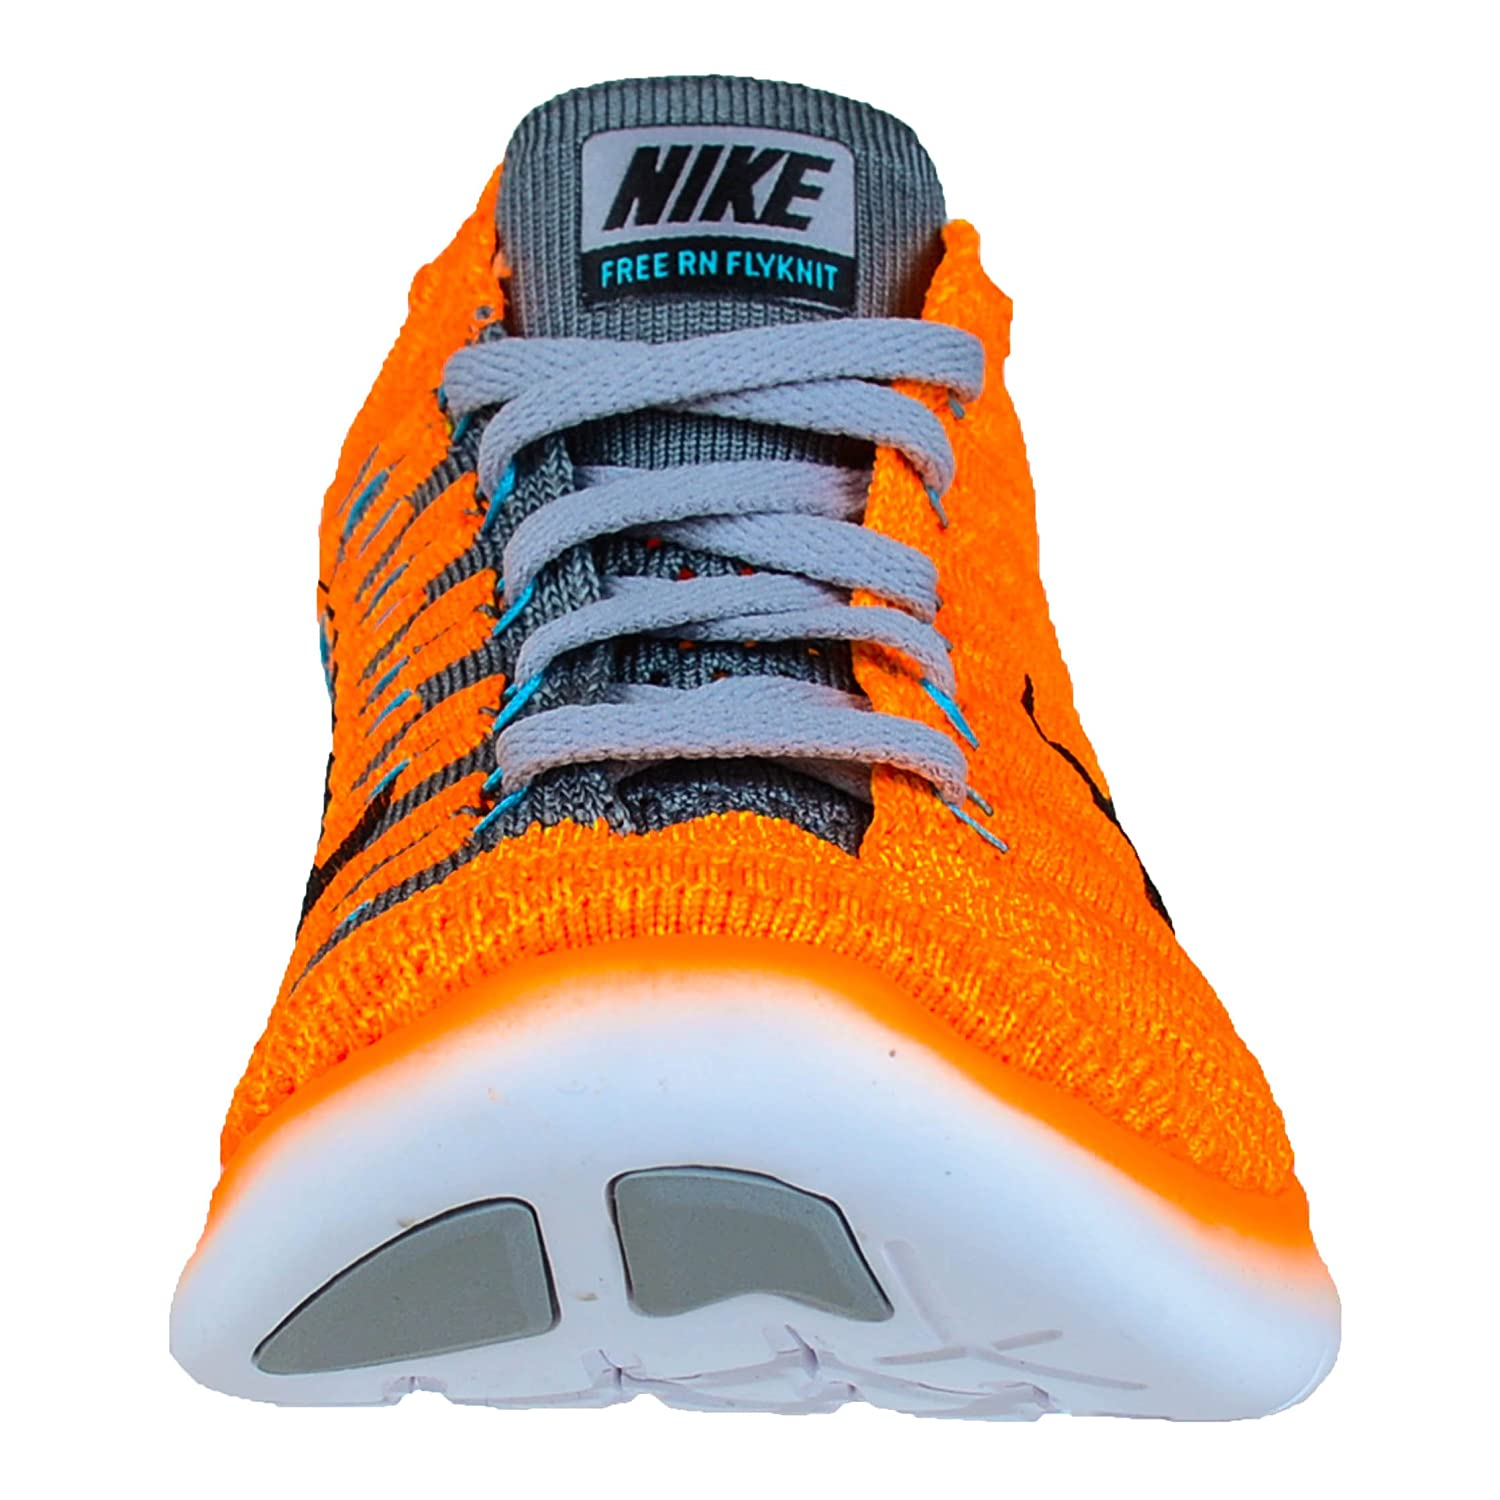 100% authentic 97f8a 4de29 ... get amazon nike womens free running motion flyknit shoes laser orange  gamma blue cool grey black